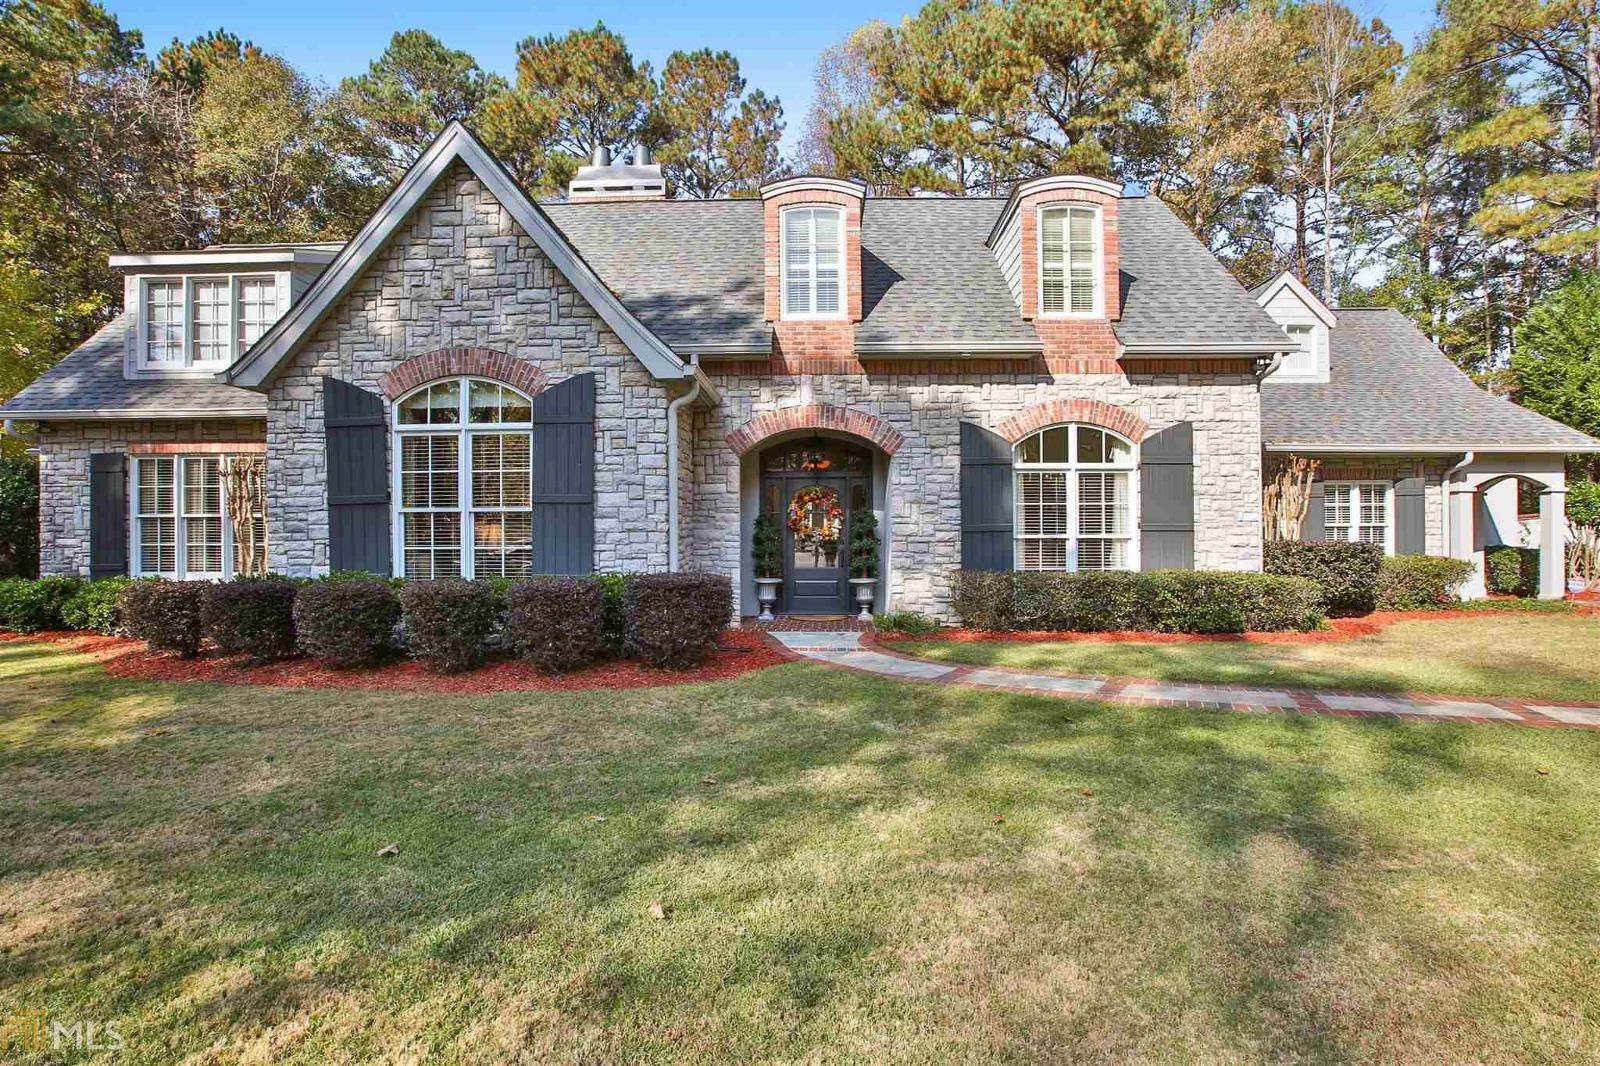 Jeannie doole of better homes and gardens real estate metro brokers in atlanta ga for Better homes and gardens real estate metro brokers